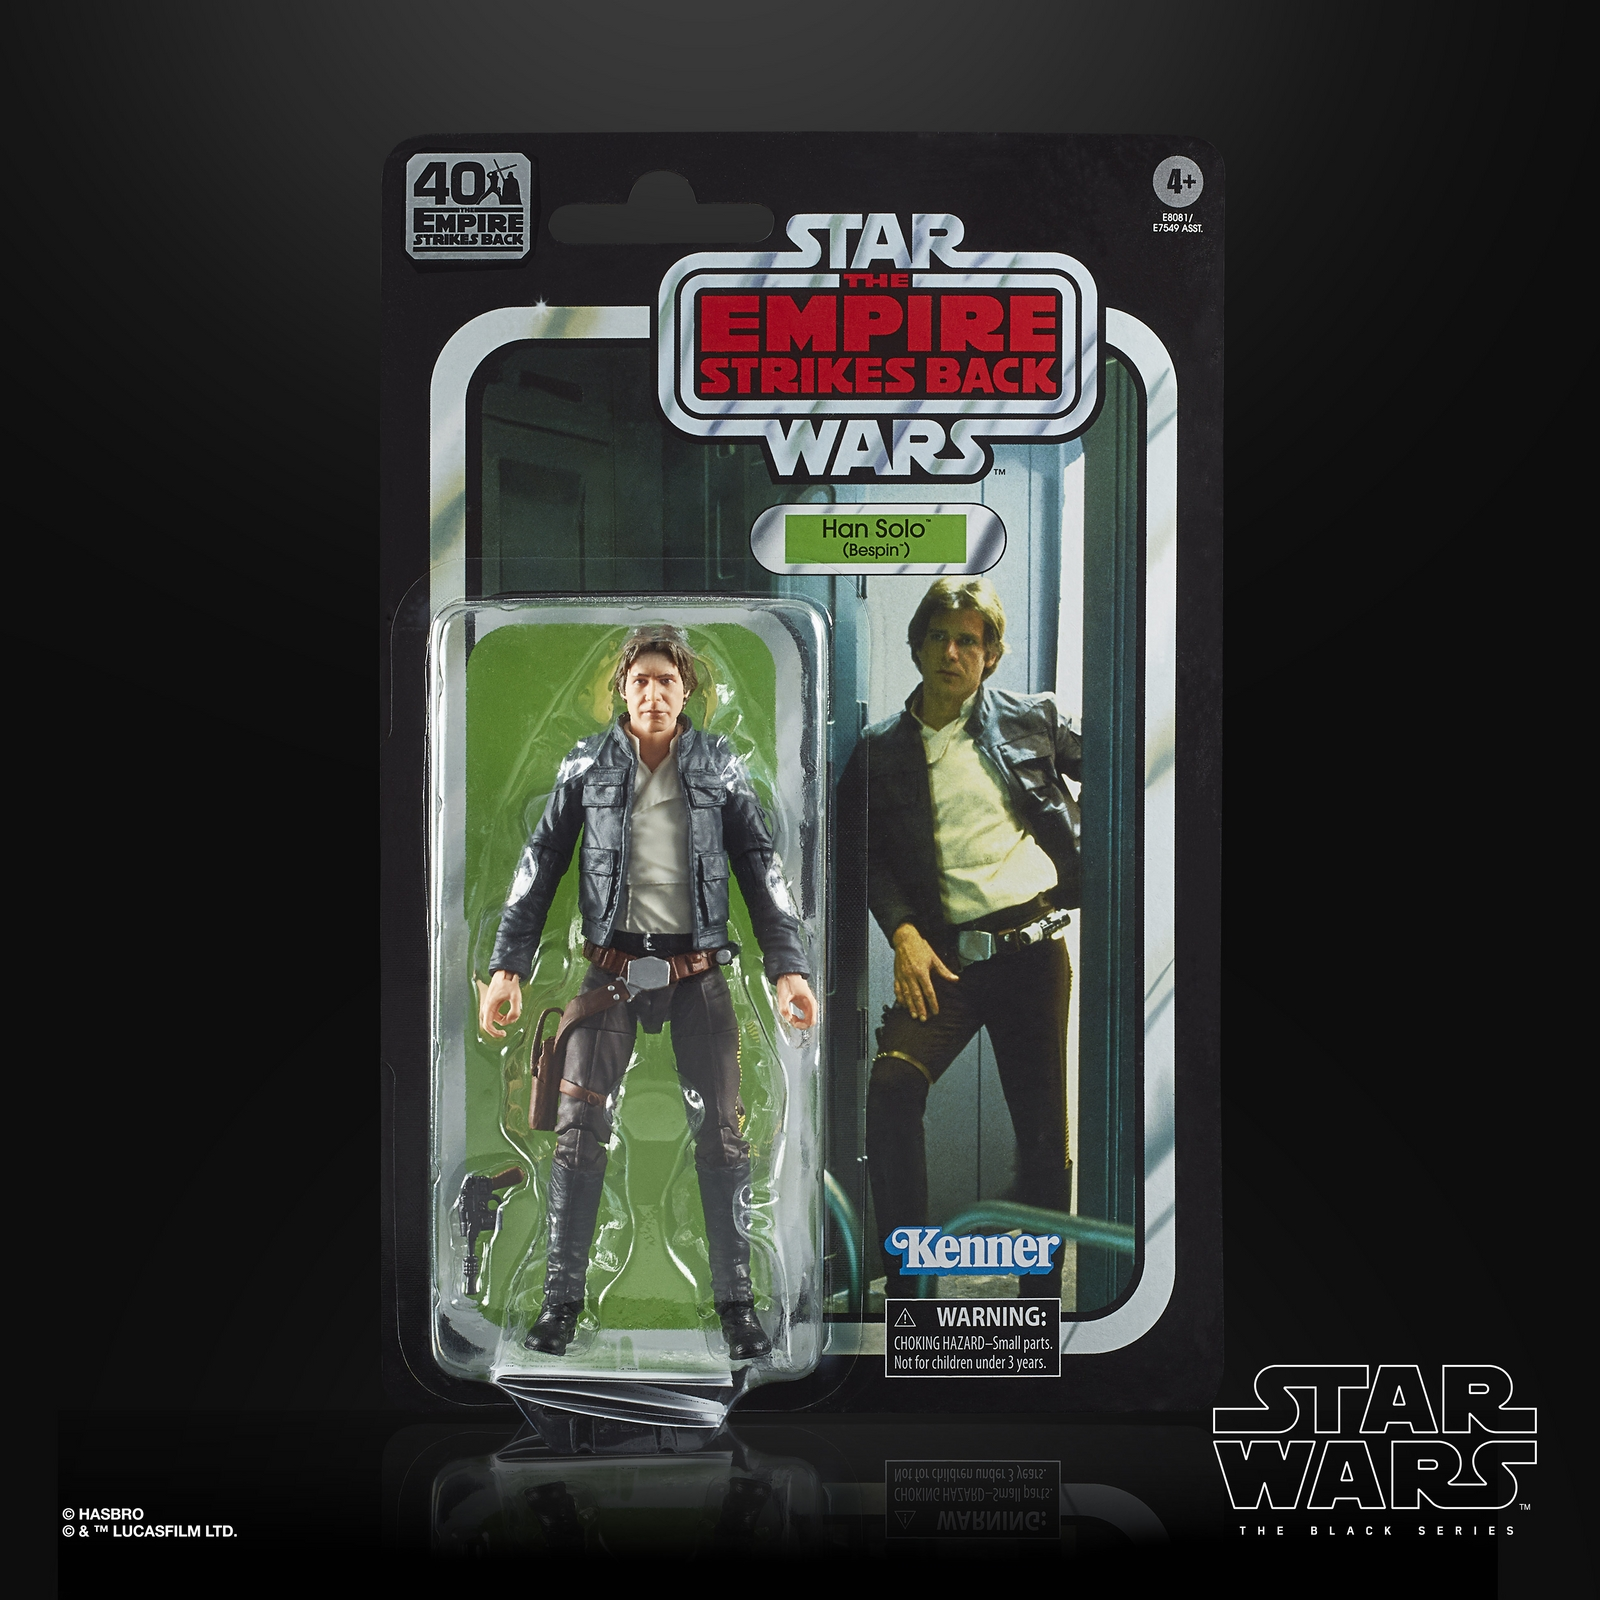 star-wars-the-black-series-40th-anniversary-6-inch-han-solo-_bespin_---in-pck.jpg